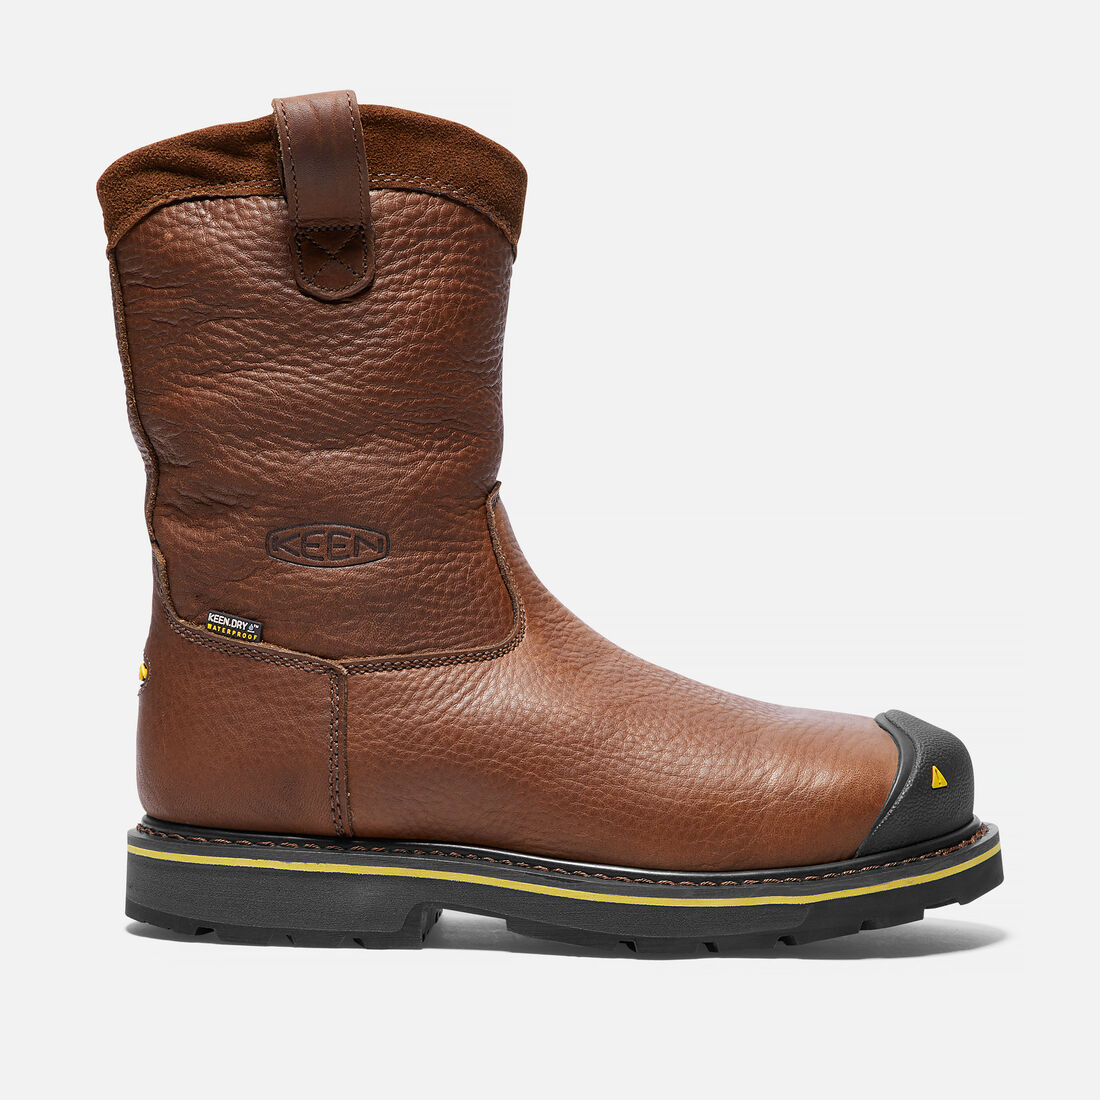 Men's Dallas Wellington (Steel Toe) in Dark Brown - large view.